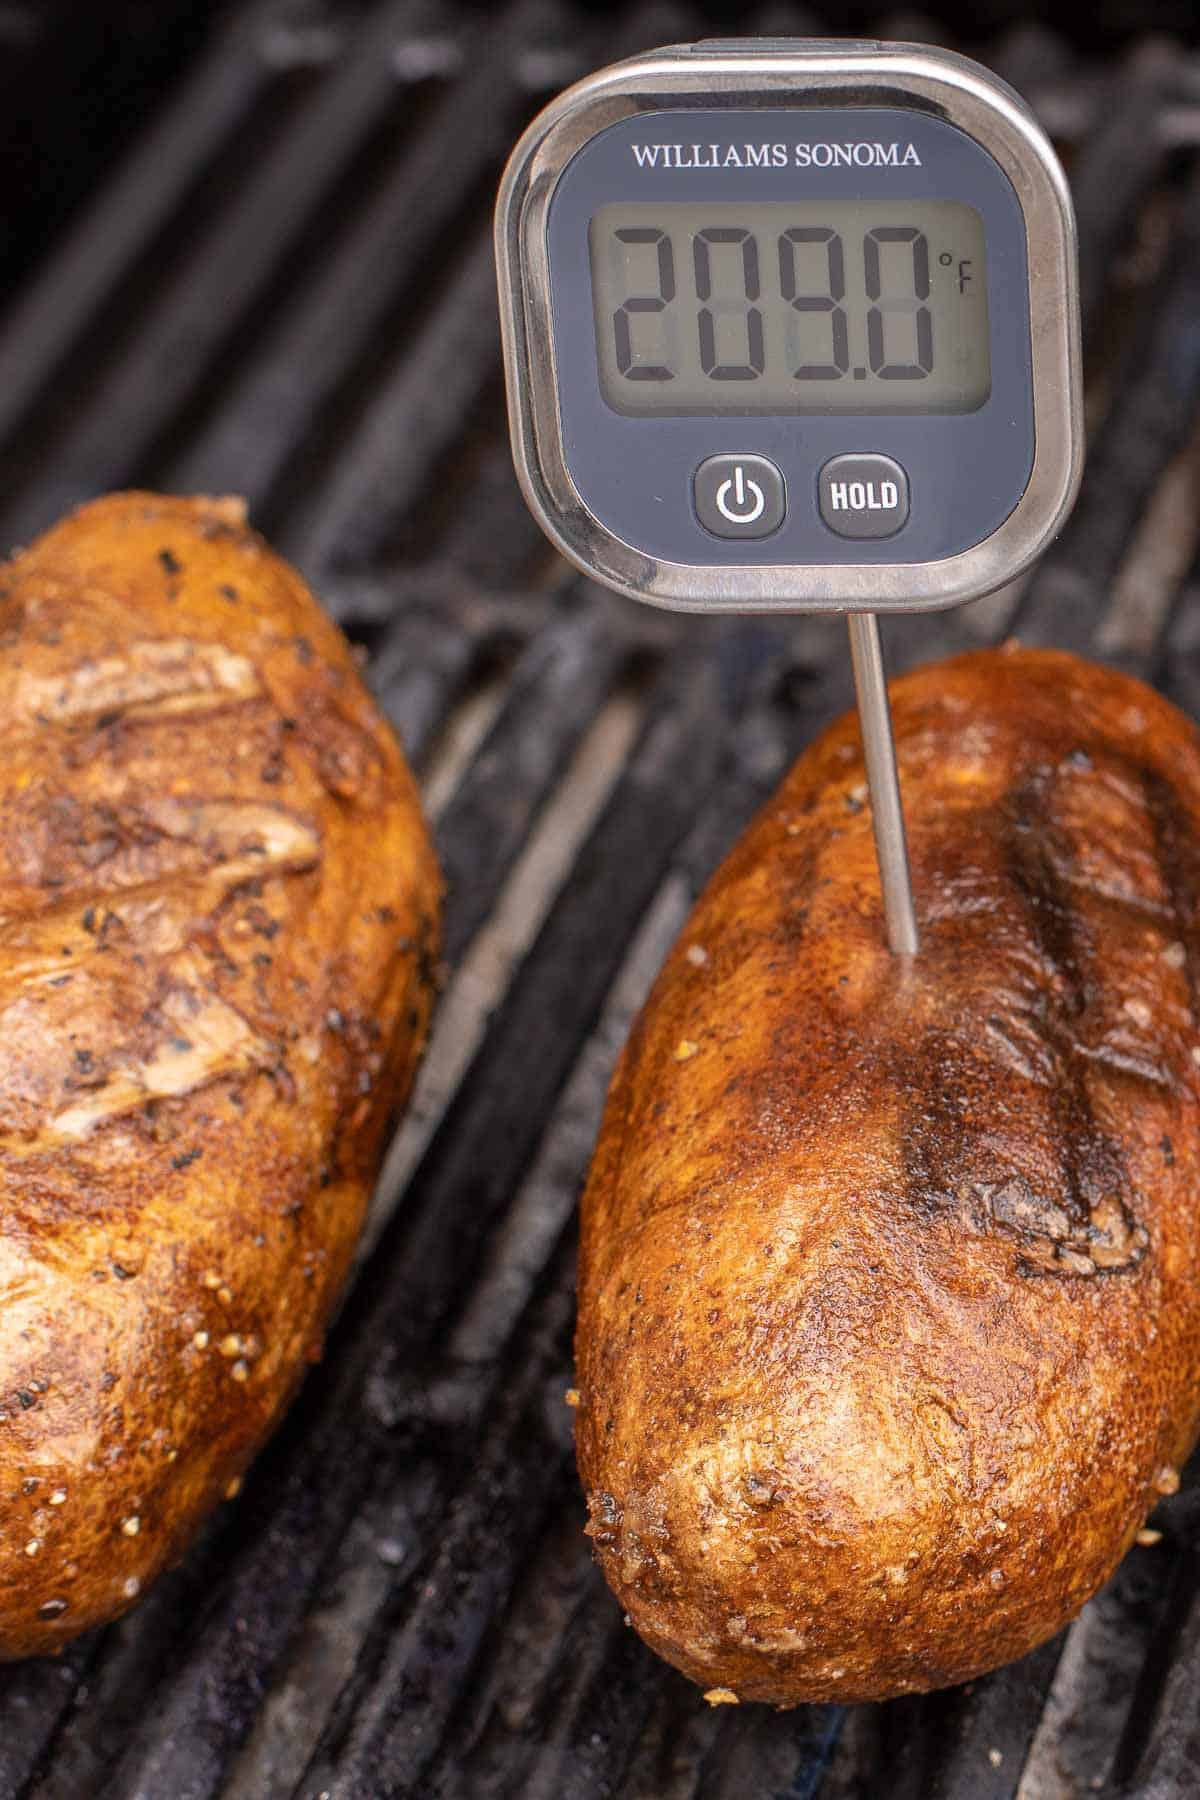 Grilled baked potatoes on a grill grate, one has a digital thermometer inside.